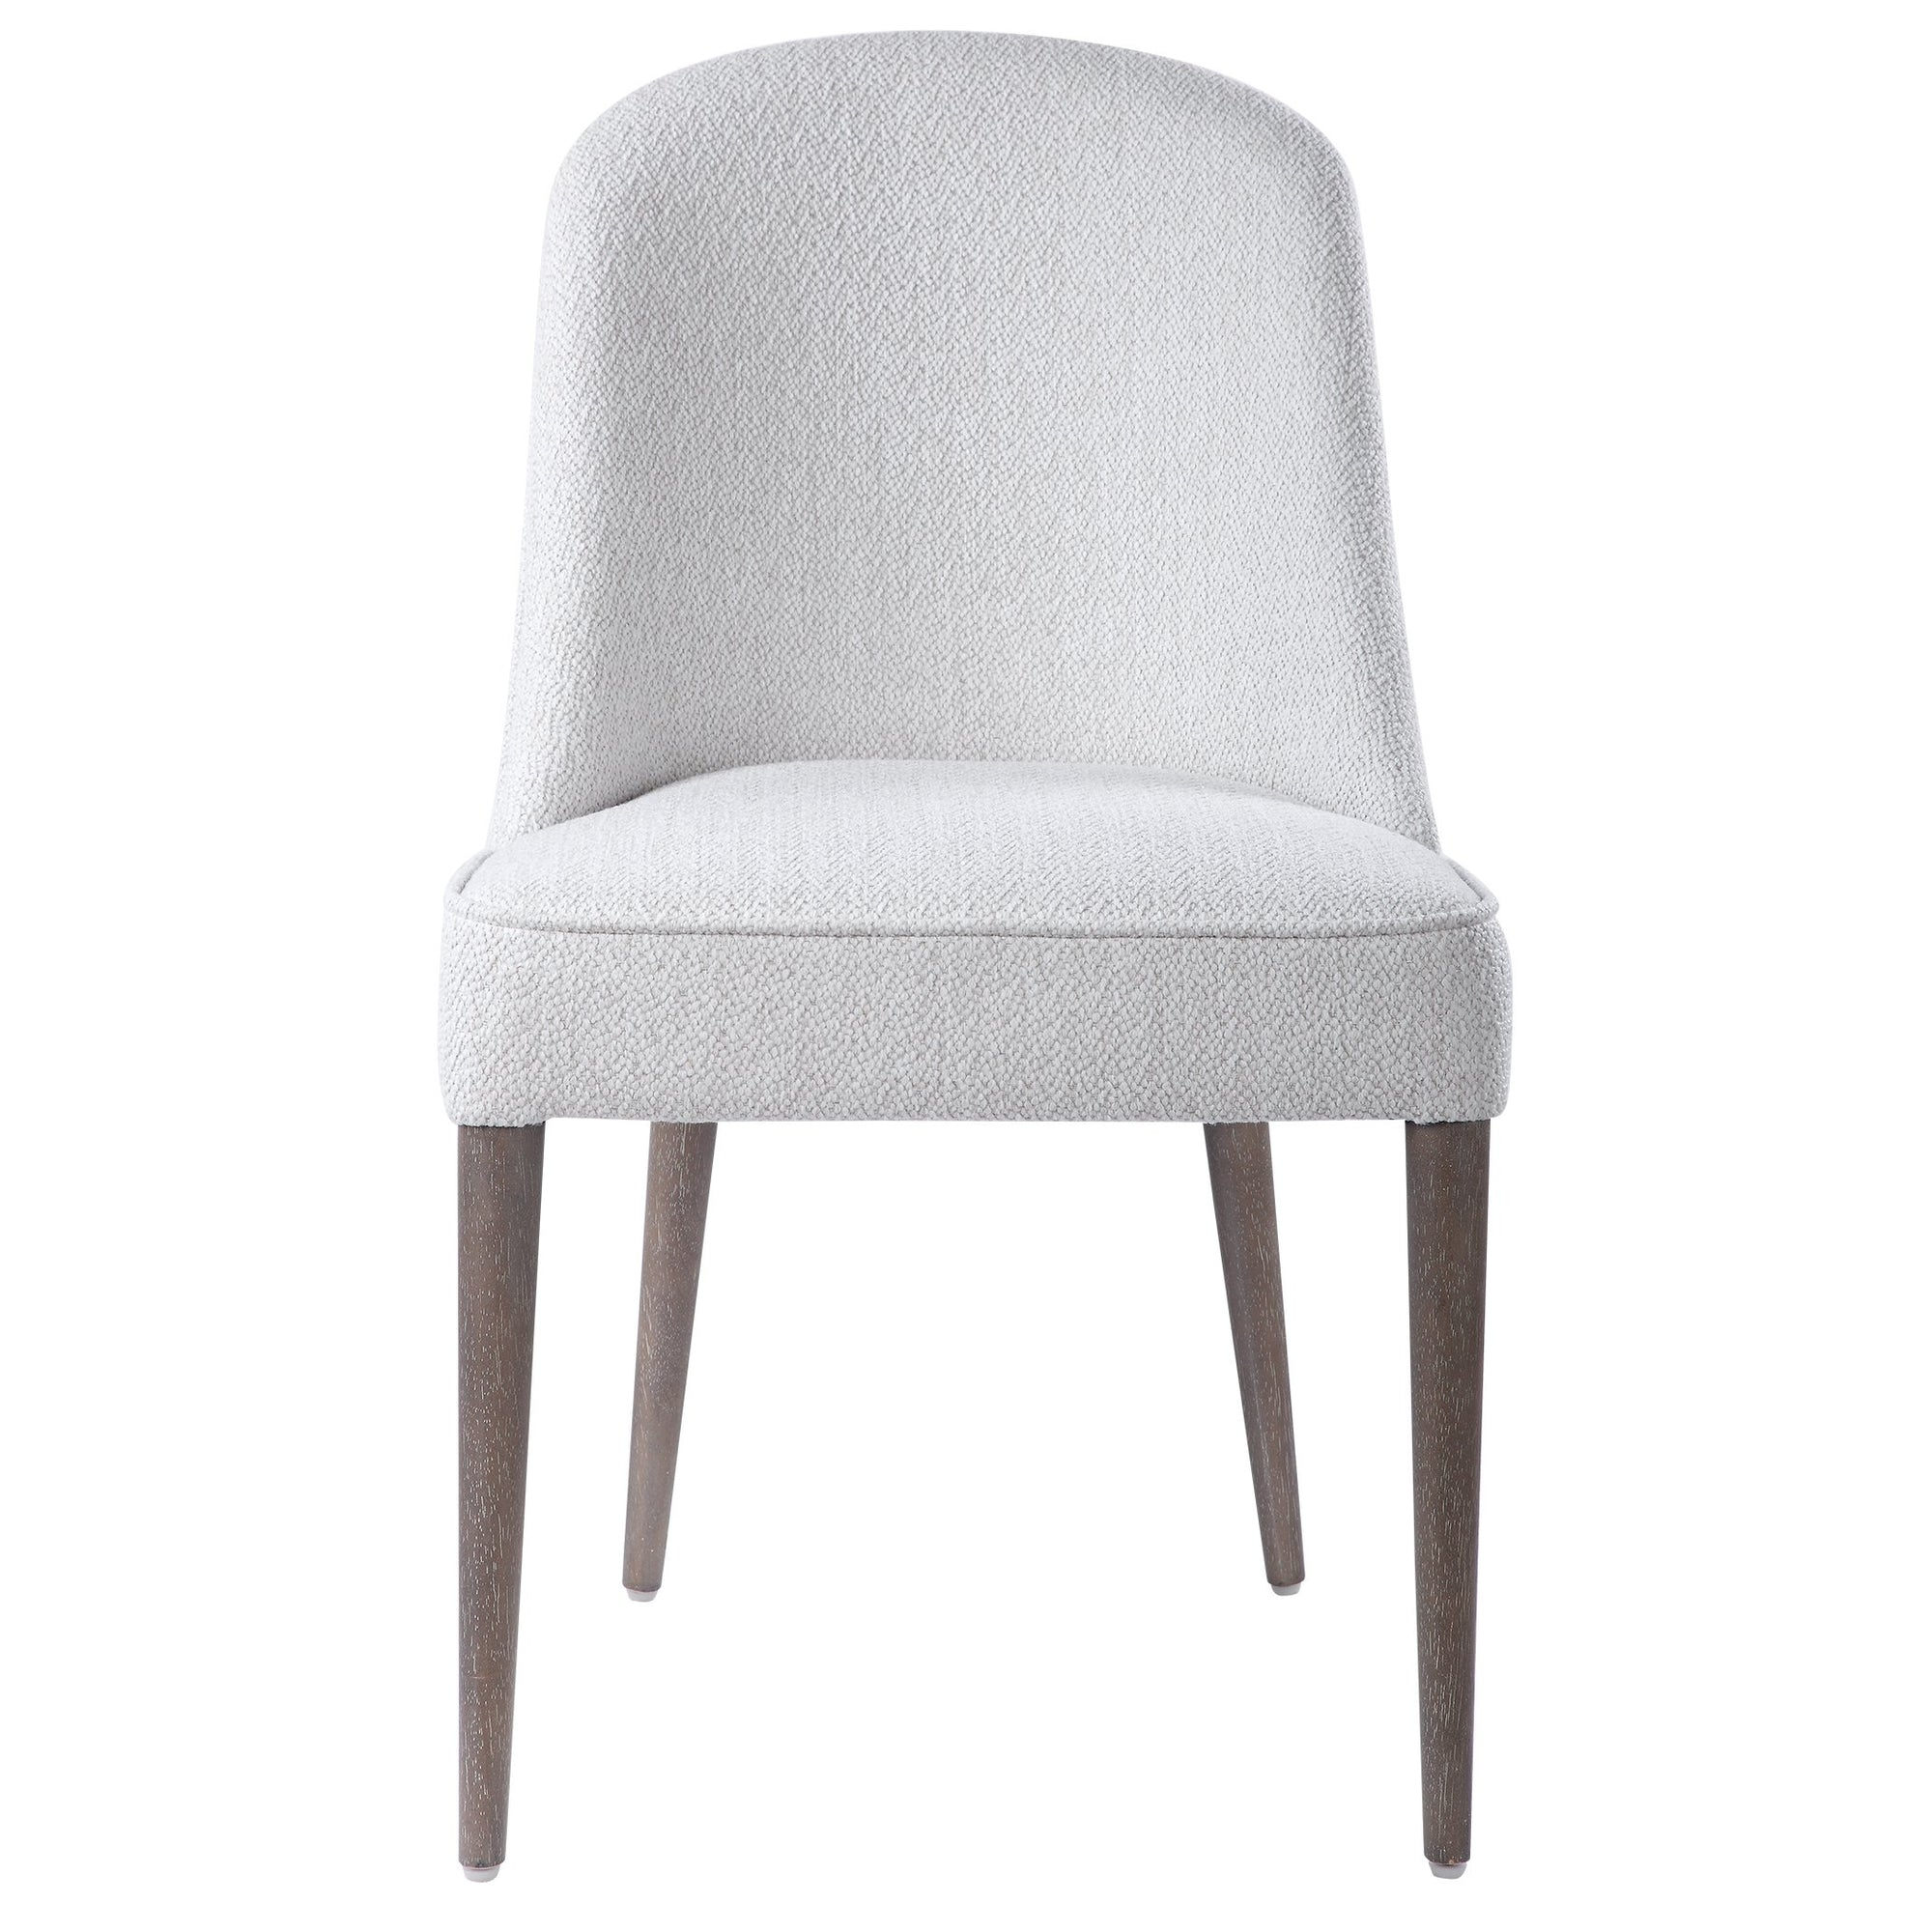 Brie Armless Chair, White,Set Of 2